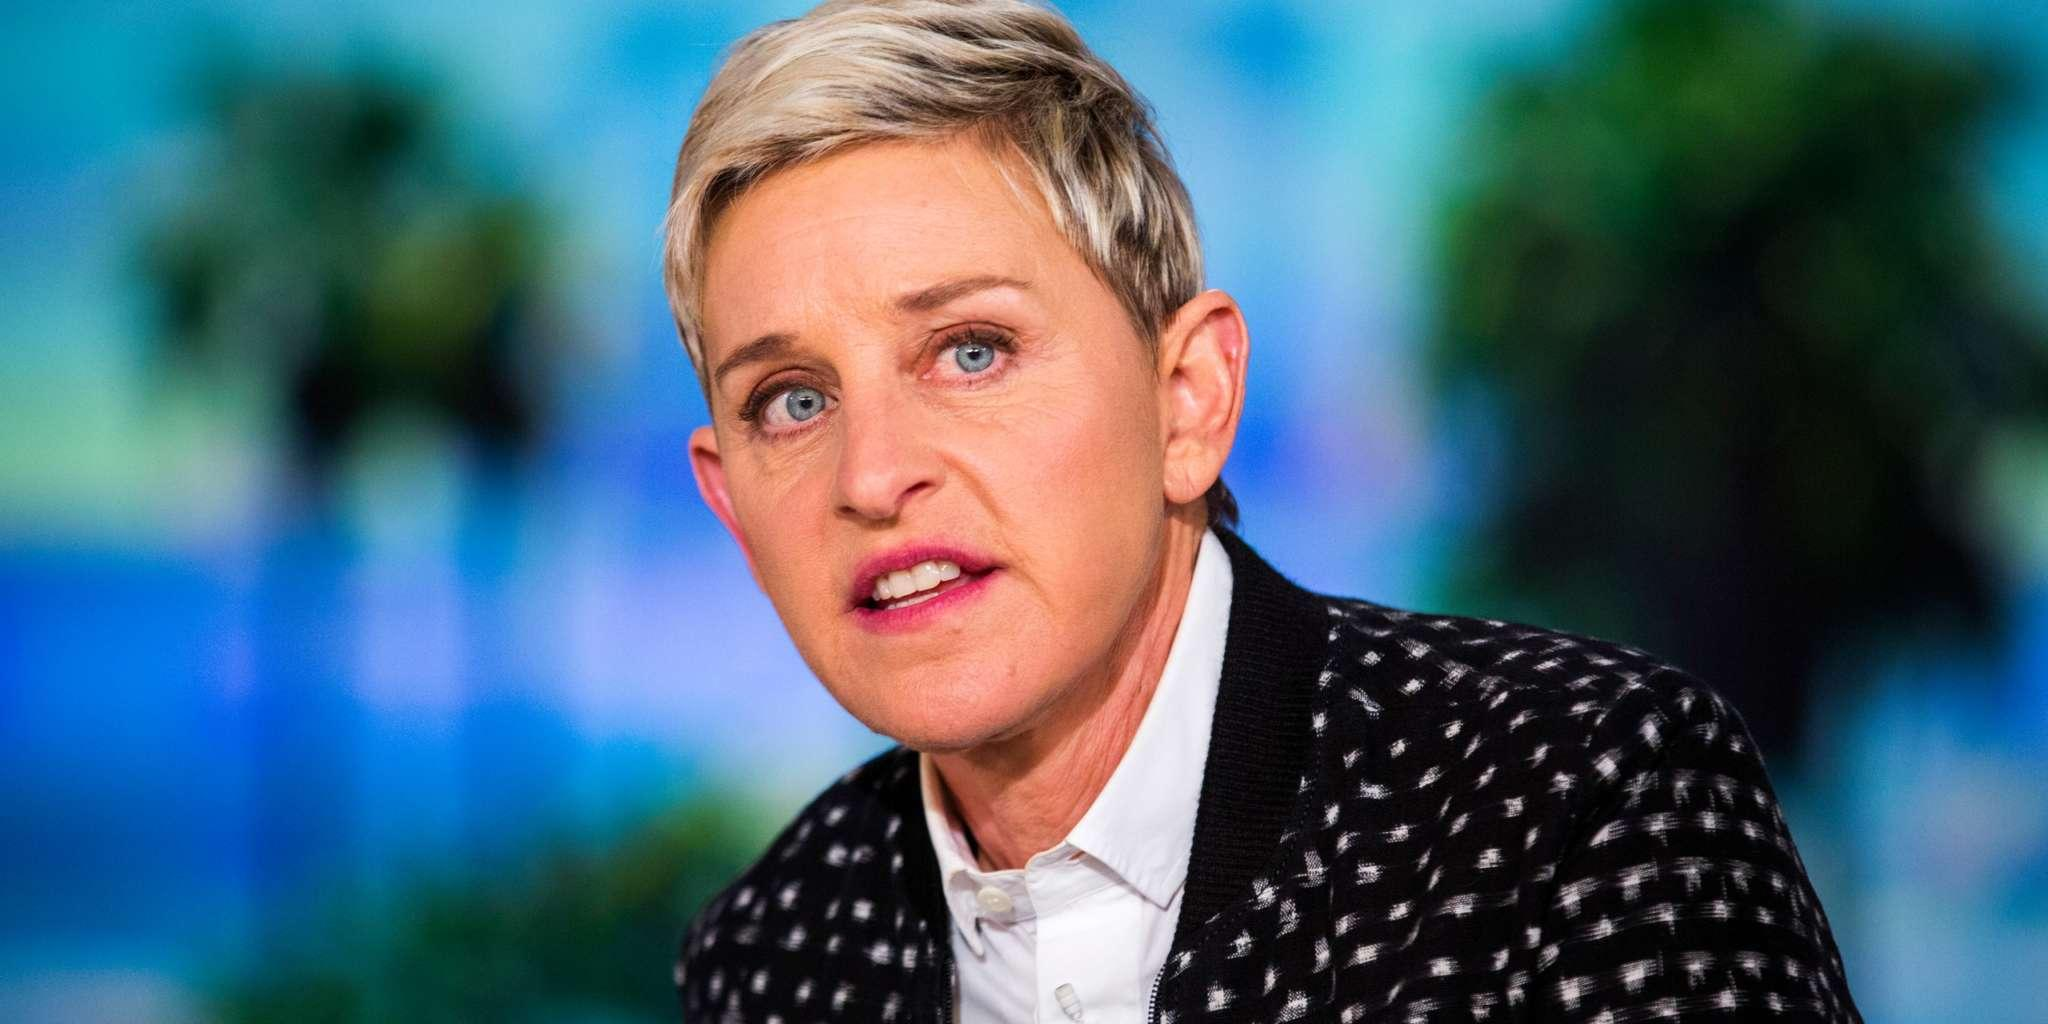 Ellen DeGeneres Says She's 'Disappointed' In First Statement On The Mistreatment Of Her Talk Show's Employees